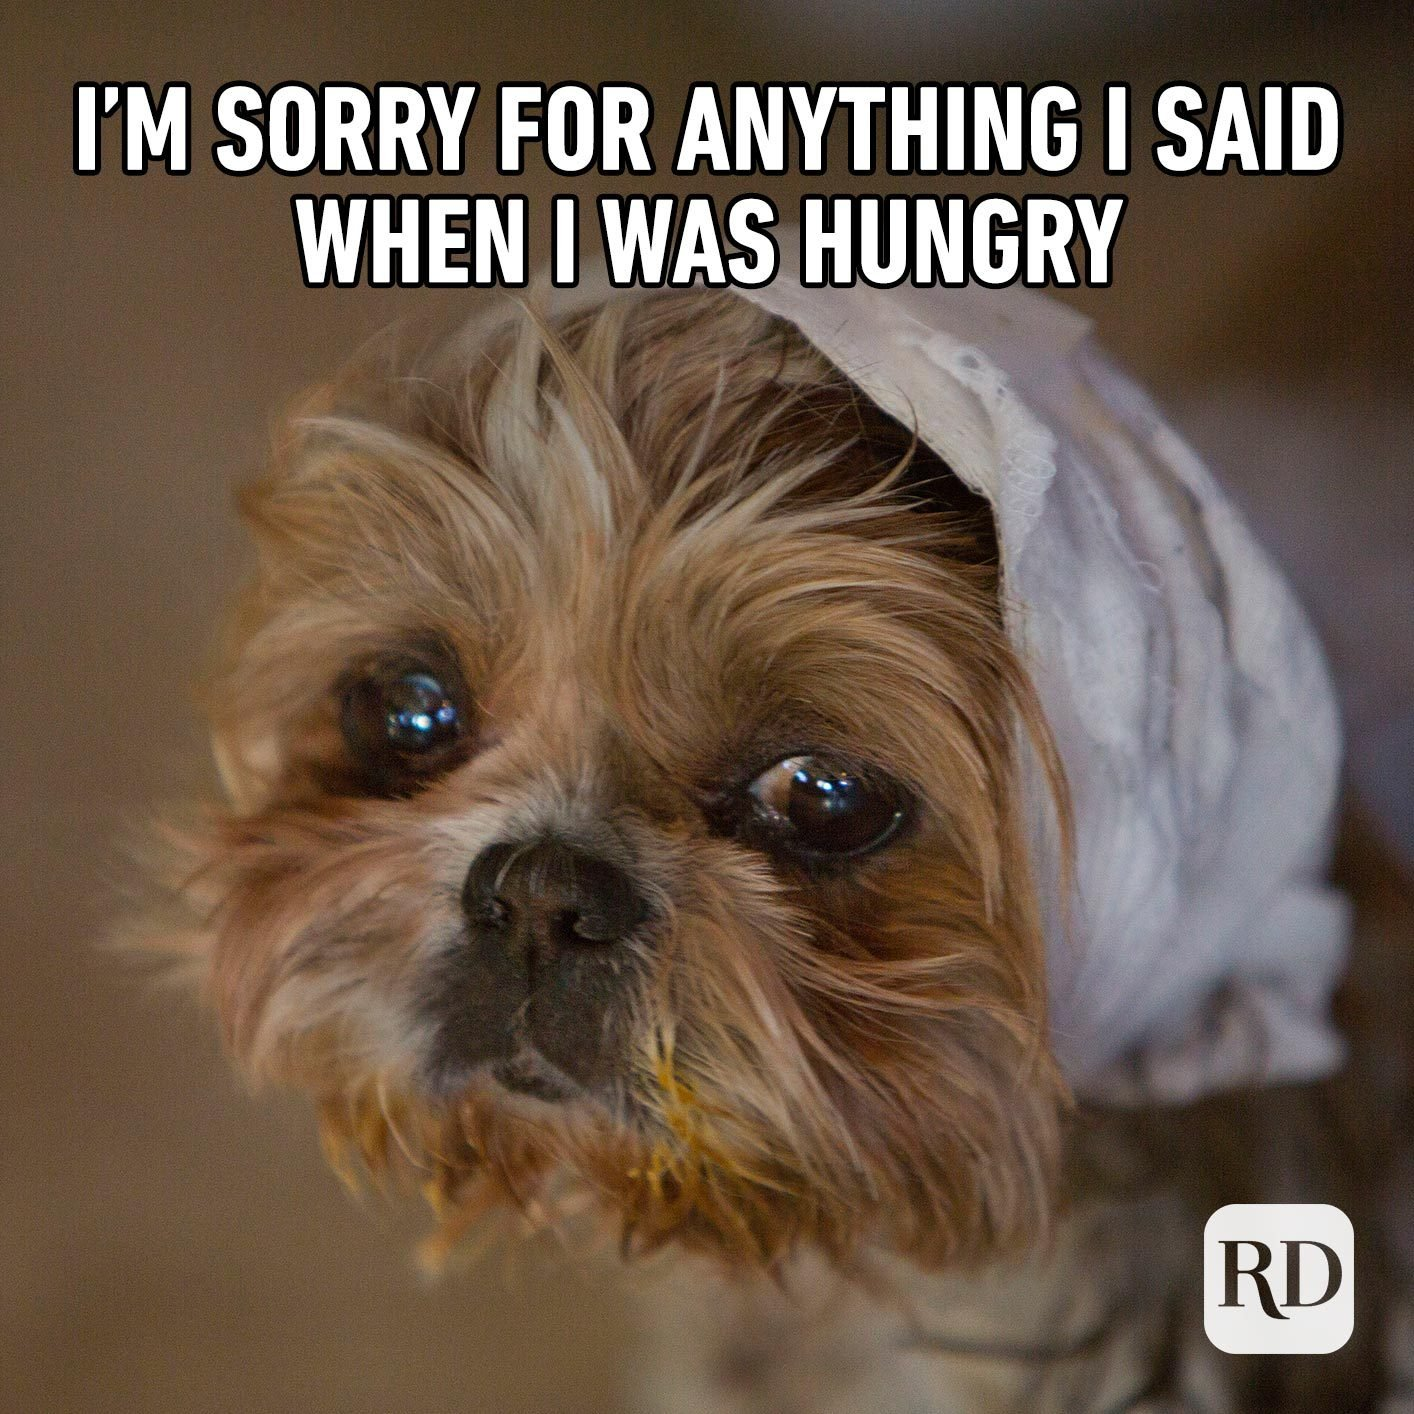 Sad dog. Meme text: I'm sorry for anything I said when I was hungry.